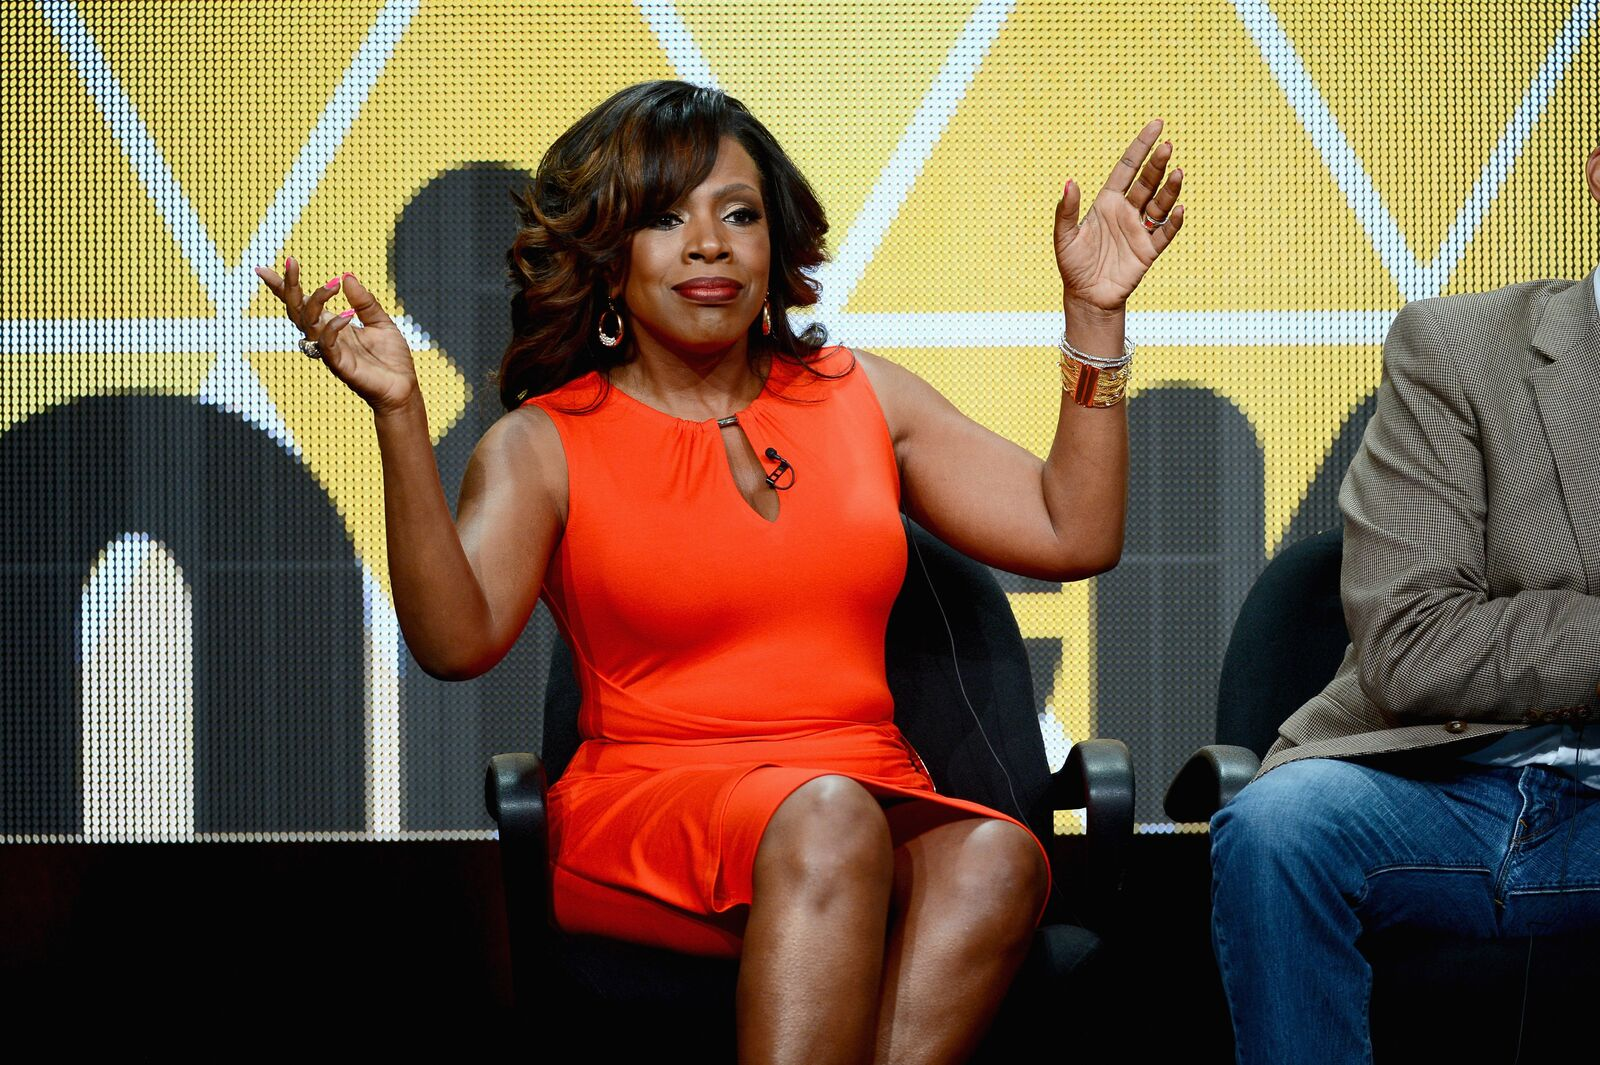 Actress Sheryl Lee Ralph speaks onstage during the Viacom TCA Summer 2013 presentaton at The Beverly Hilton Hotel on July 26, 2013 | Photo: Getty Images